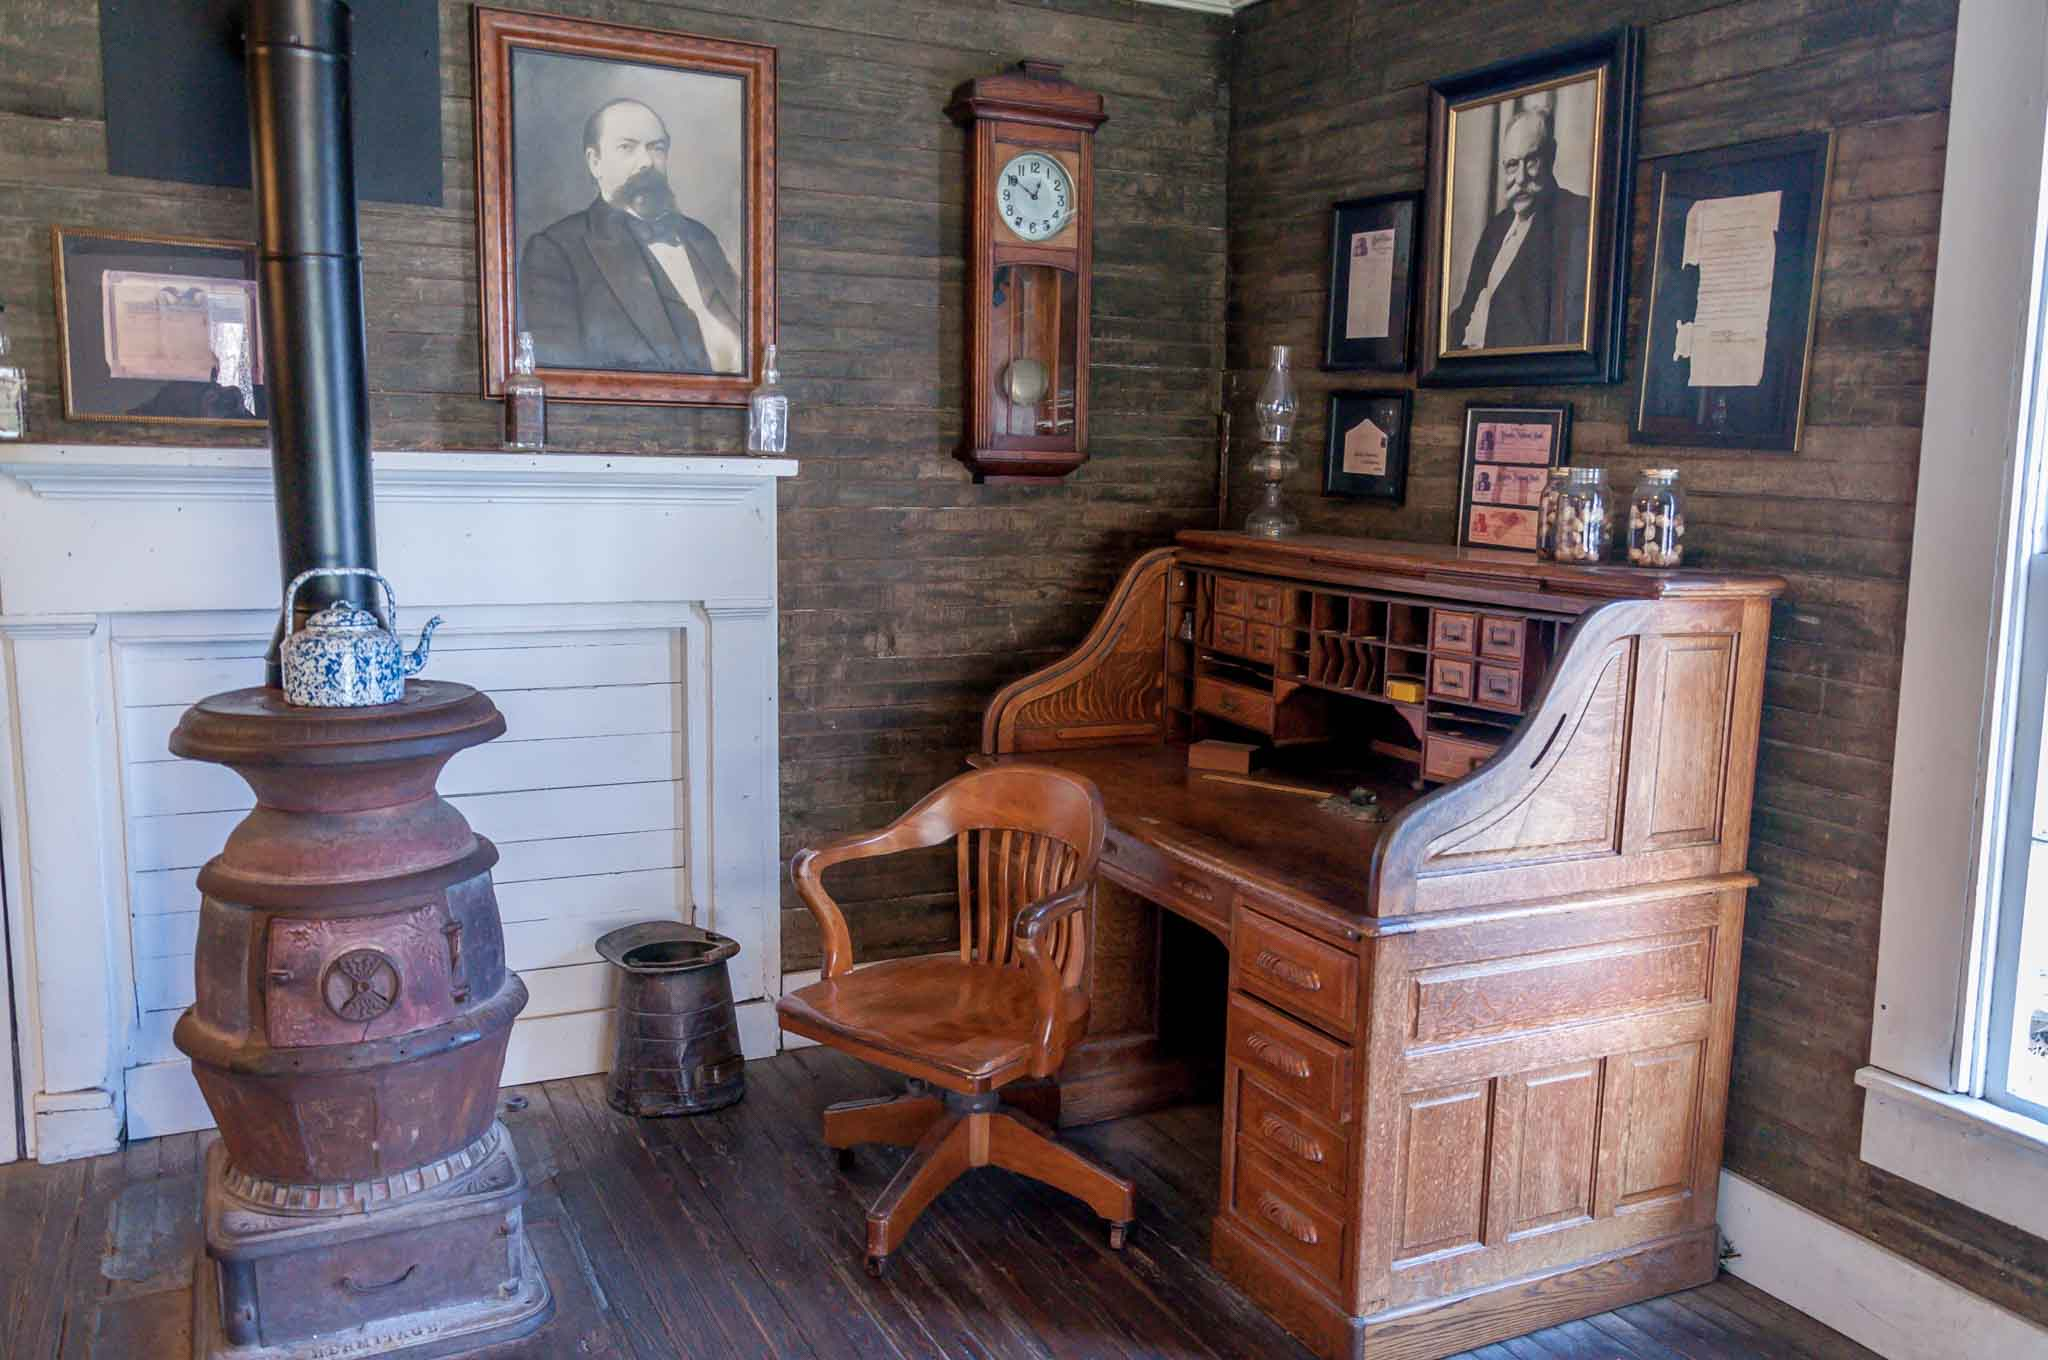 Jack Daniel's office with desk, heater, and photographs